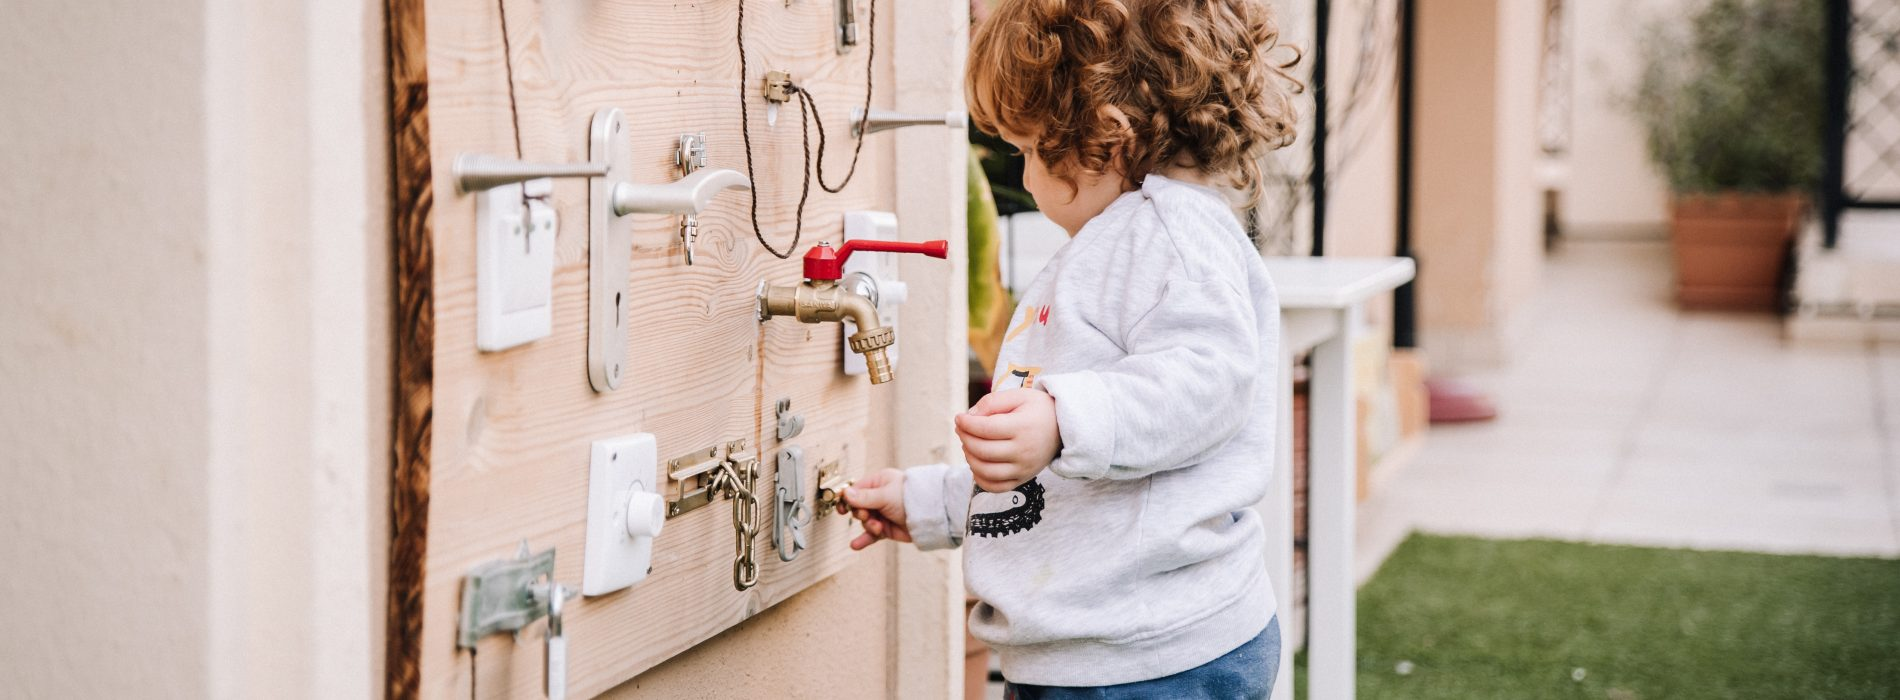 Toddler working at locks and latches board fixed to outside wall